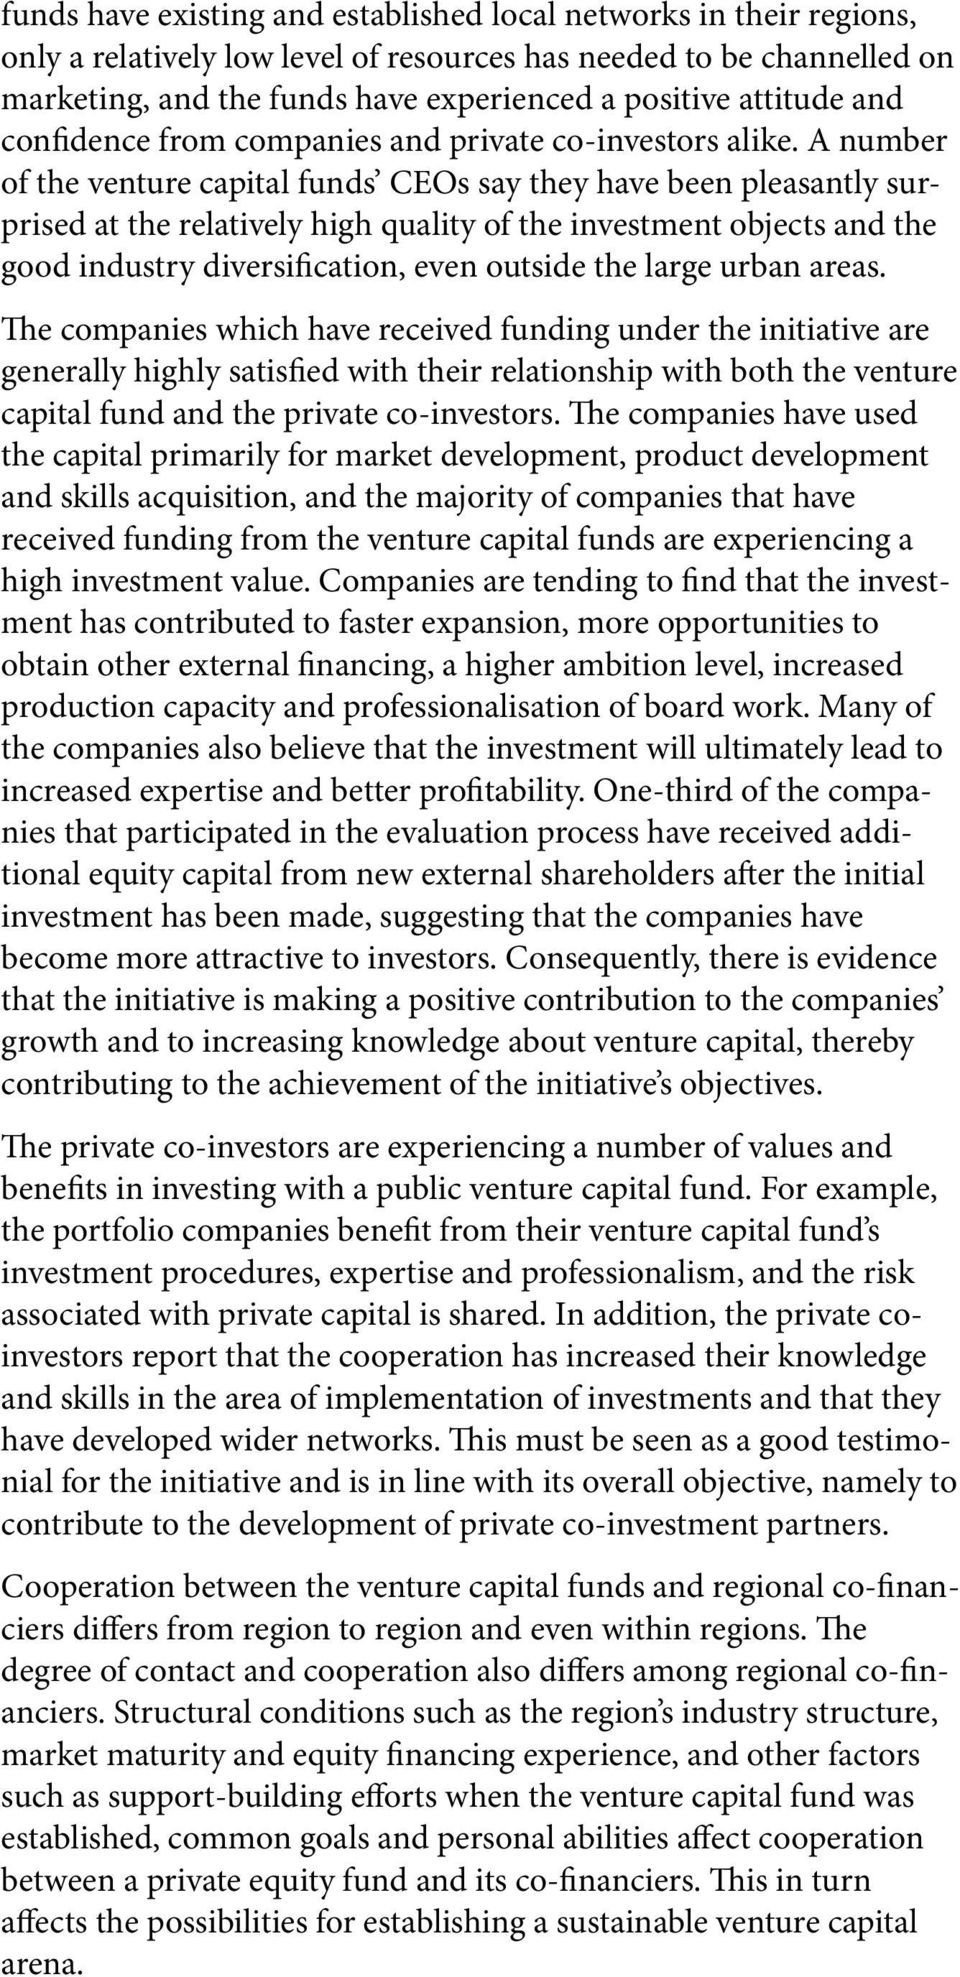 A number of the venture capital funds CEOs say they have been pleasantly surprised at the relatively high quality of the investment objects and the good industry diversification, even outside the